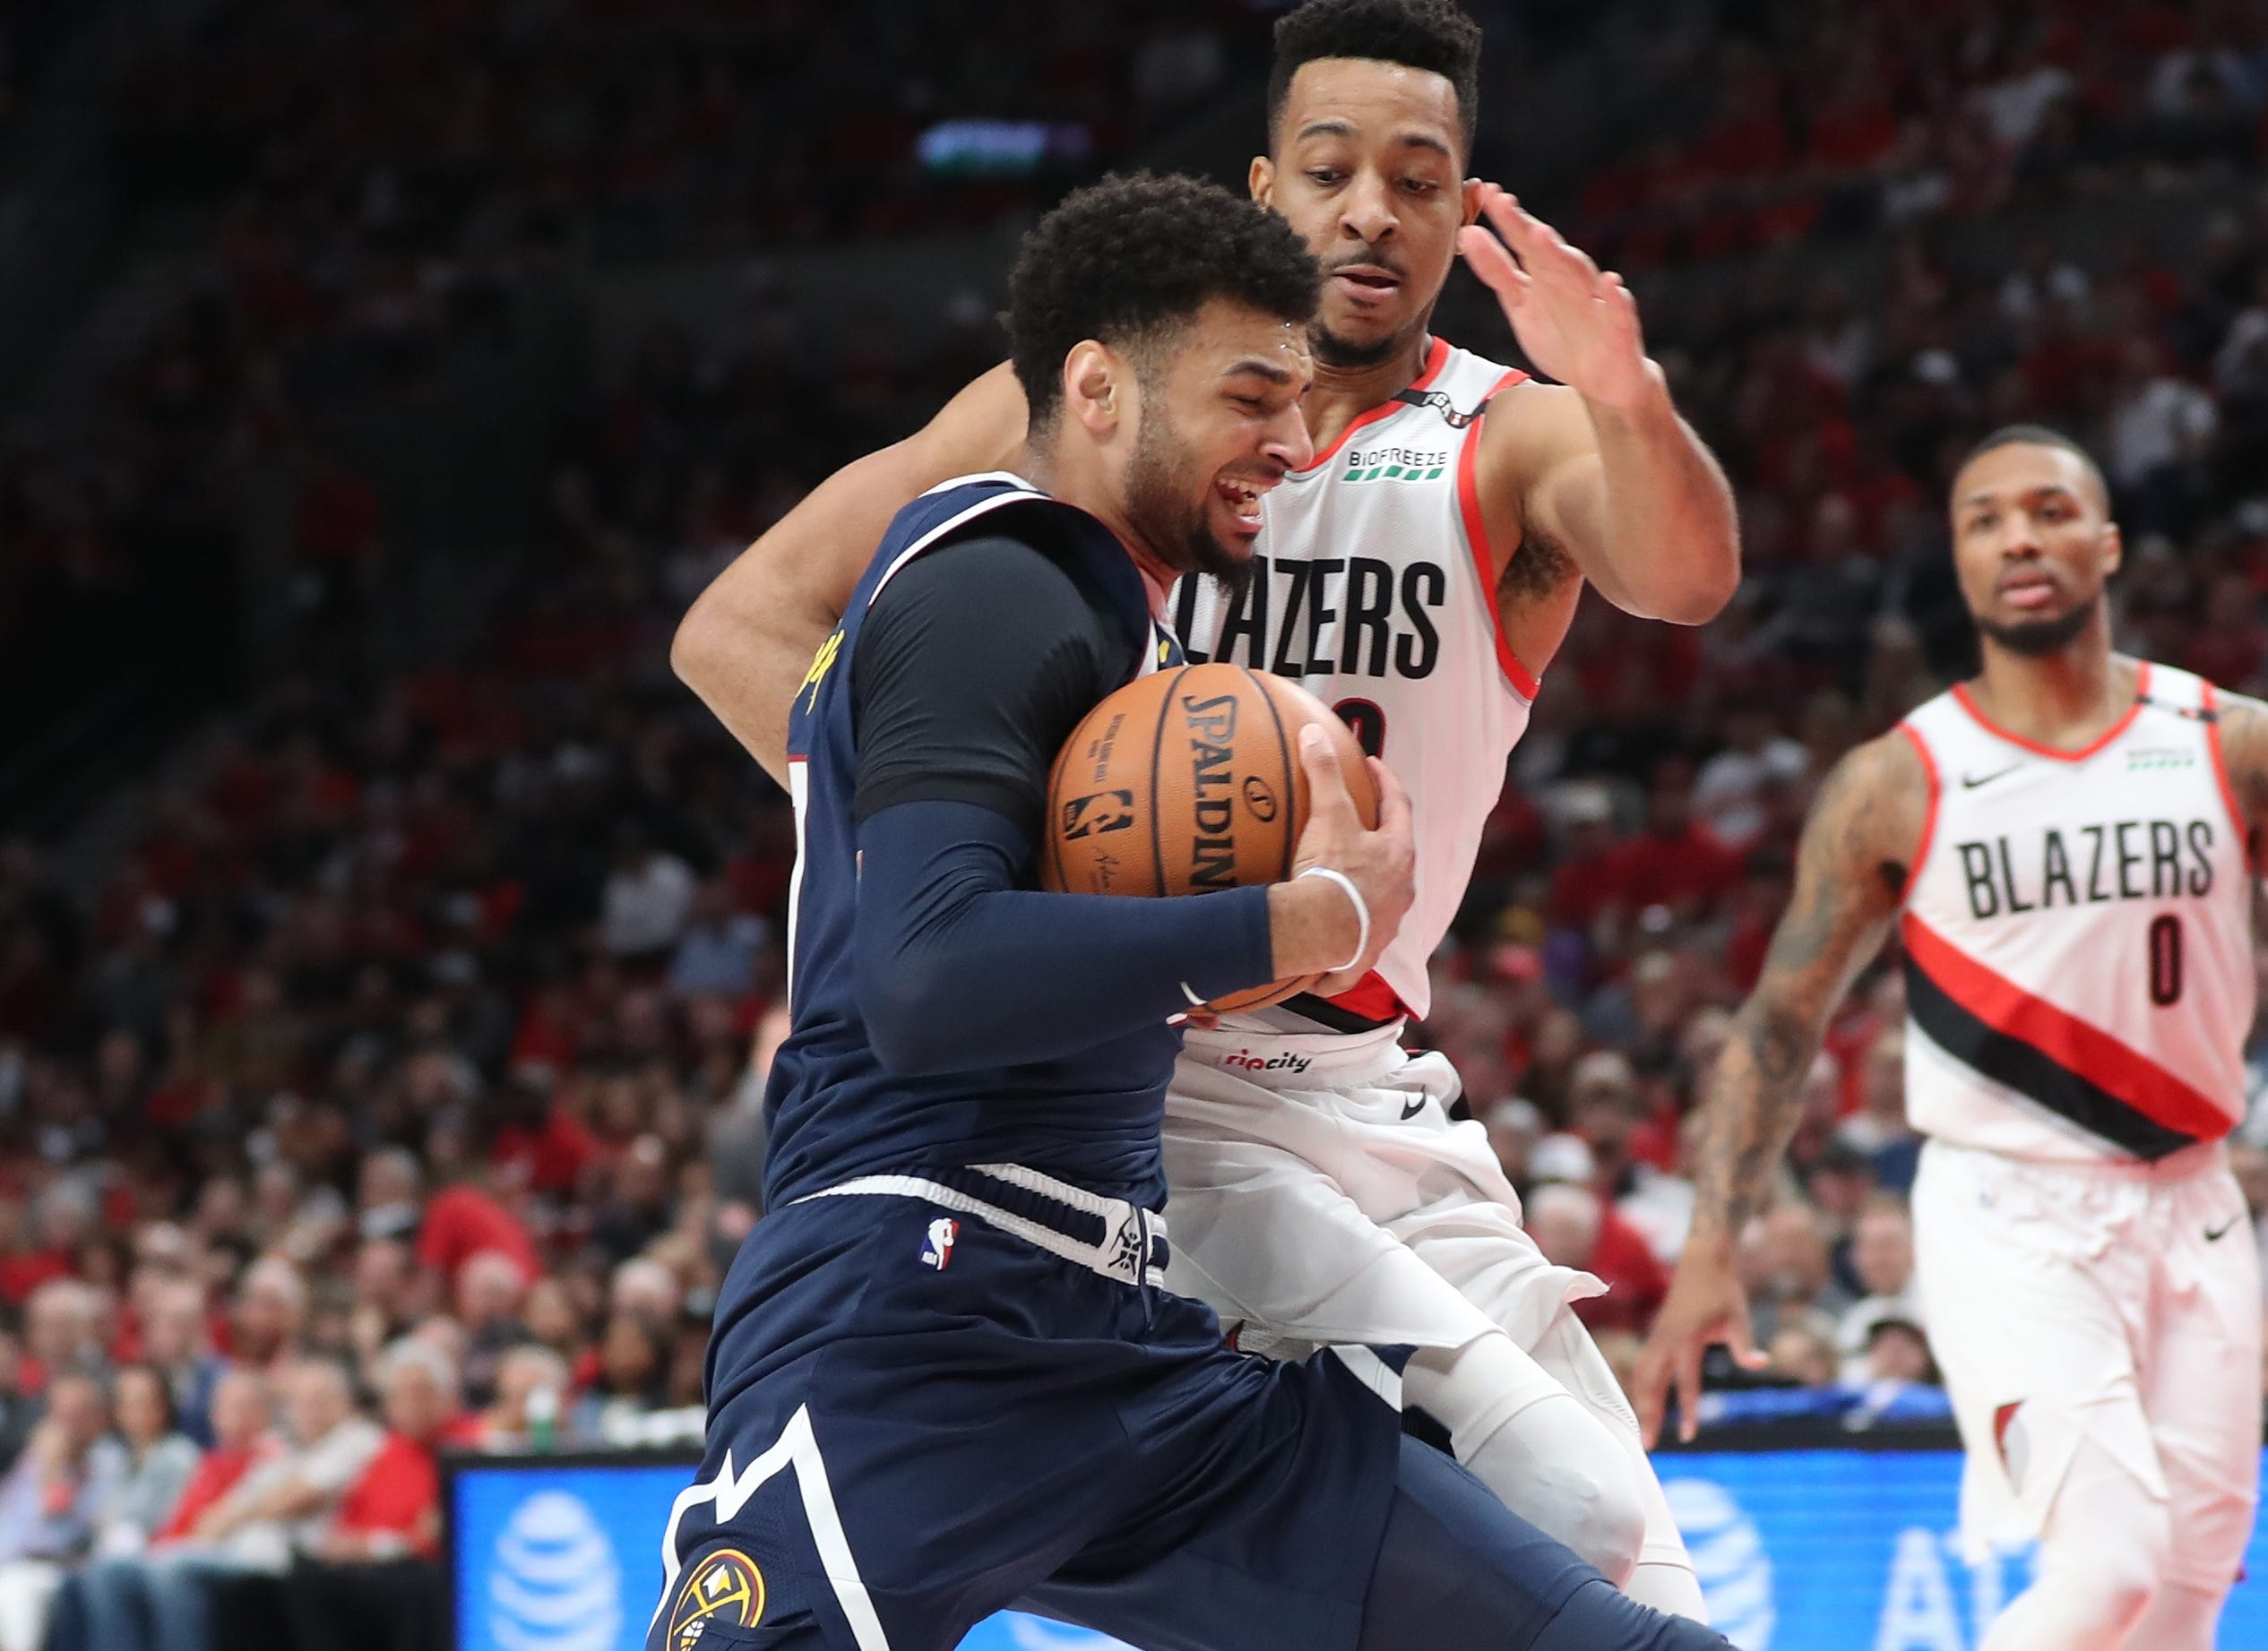 May 5: Nuggets guard Jamal Murray (27) tries to drive against Trail Blazers defender C.J. McCollum (3) during Game 4 in Portland.